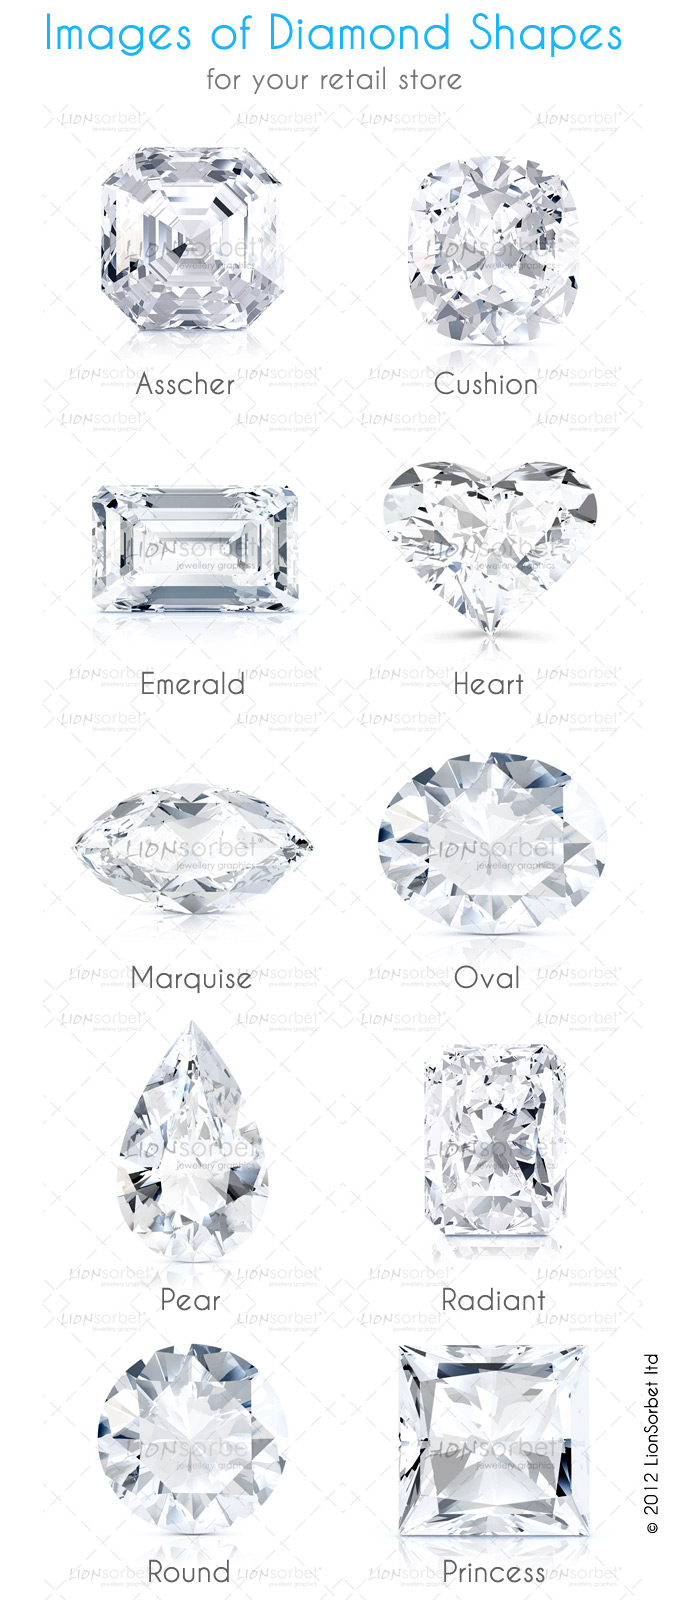 diamond_images_shapes